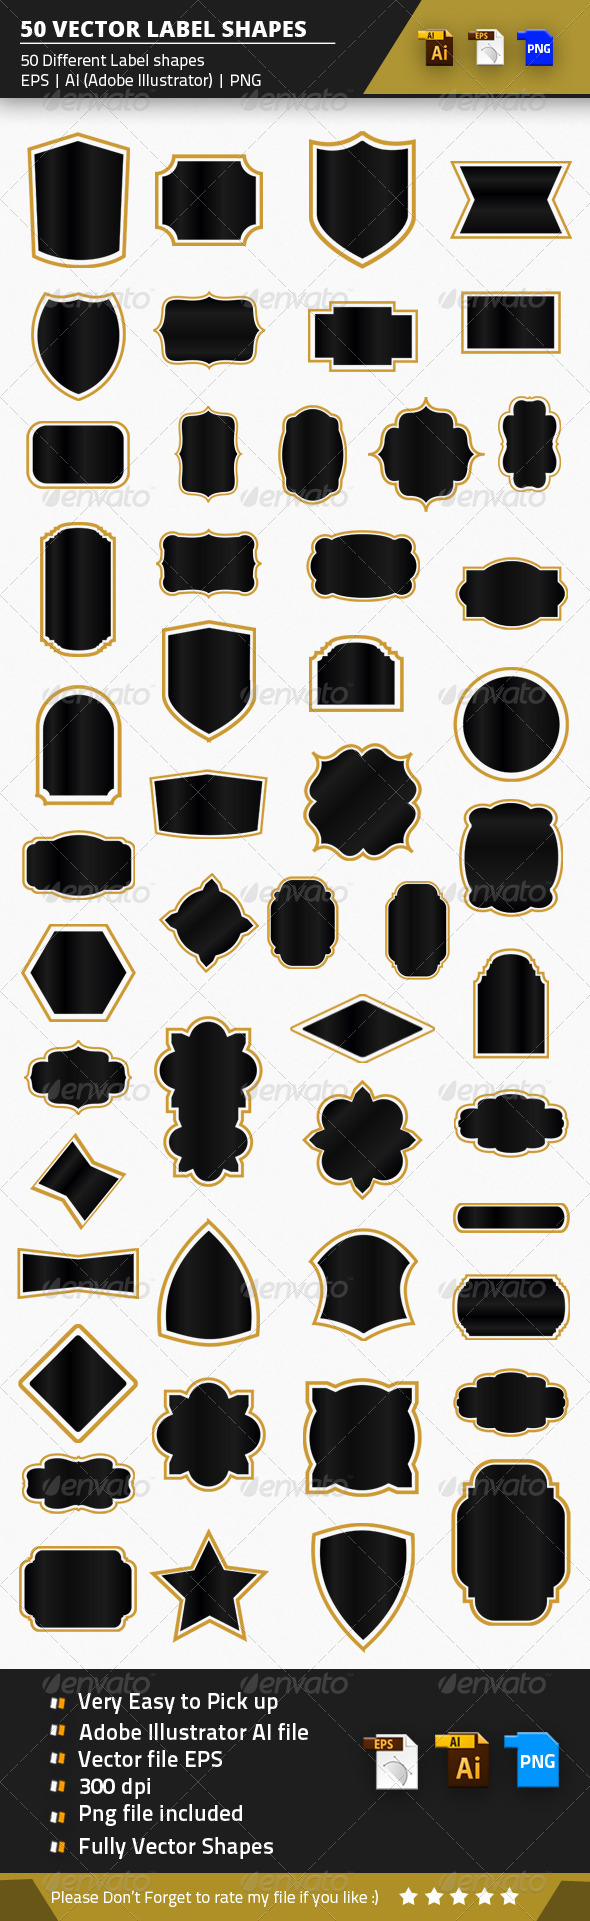 GraphicRiver 50 Vector Label Shapes 8535644